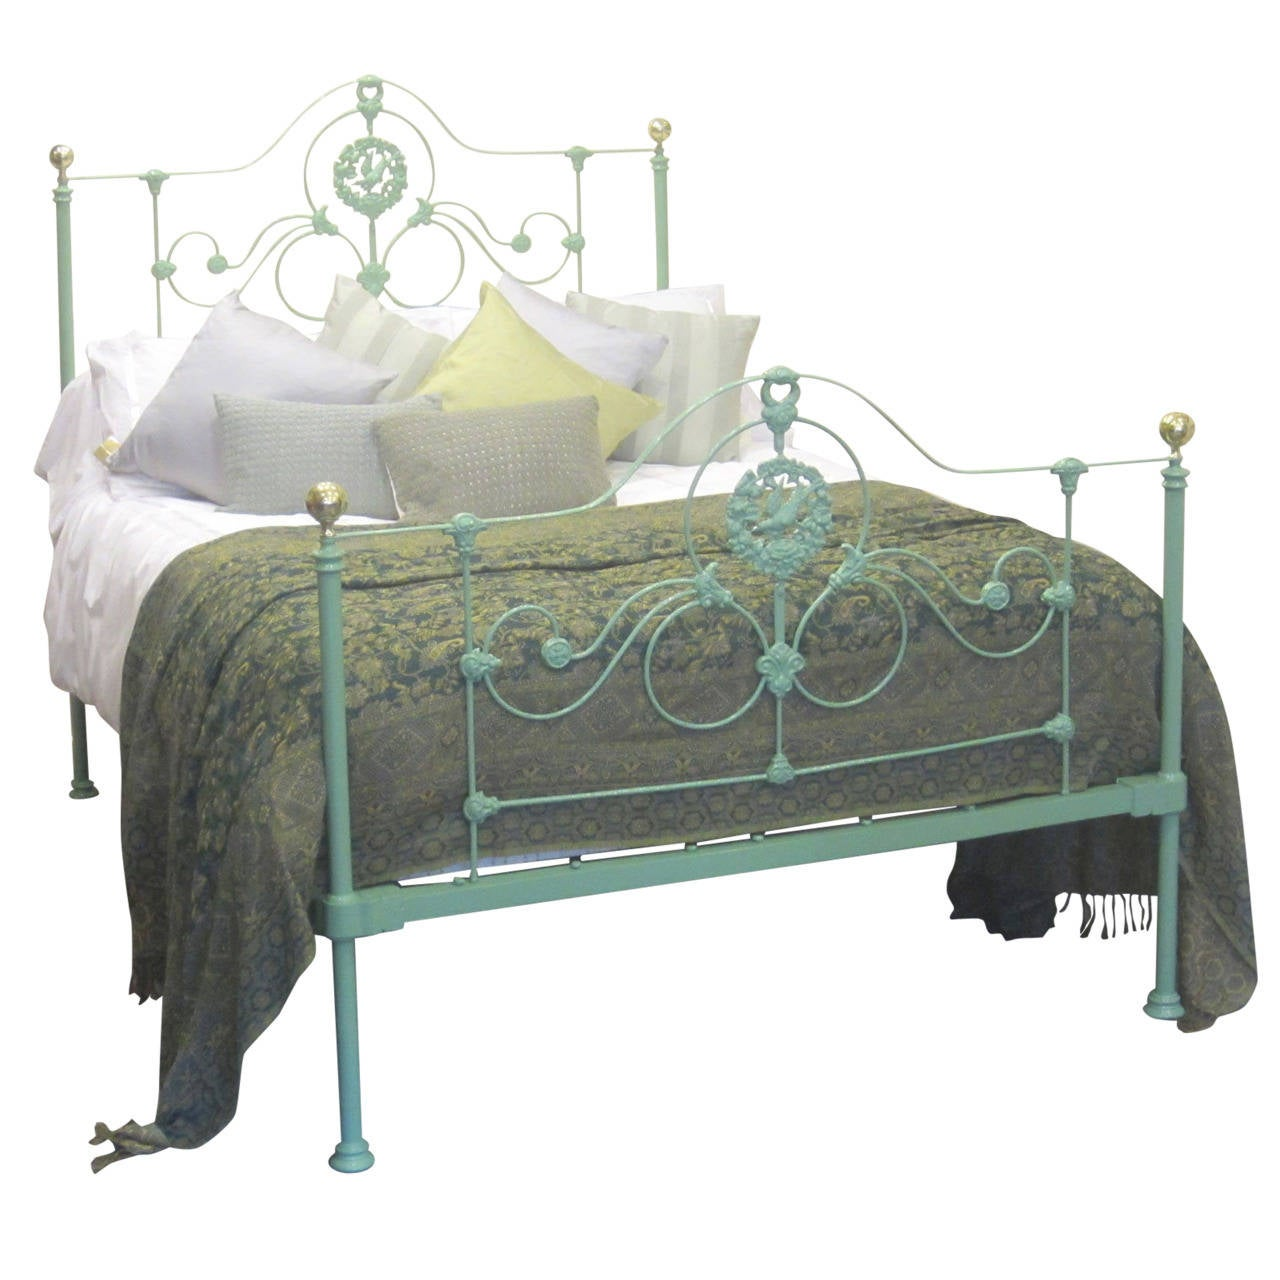 Double cast iron antique bed at 1stdibs for Iron bedroom furniture